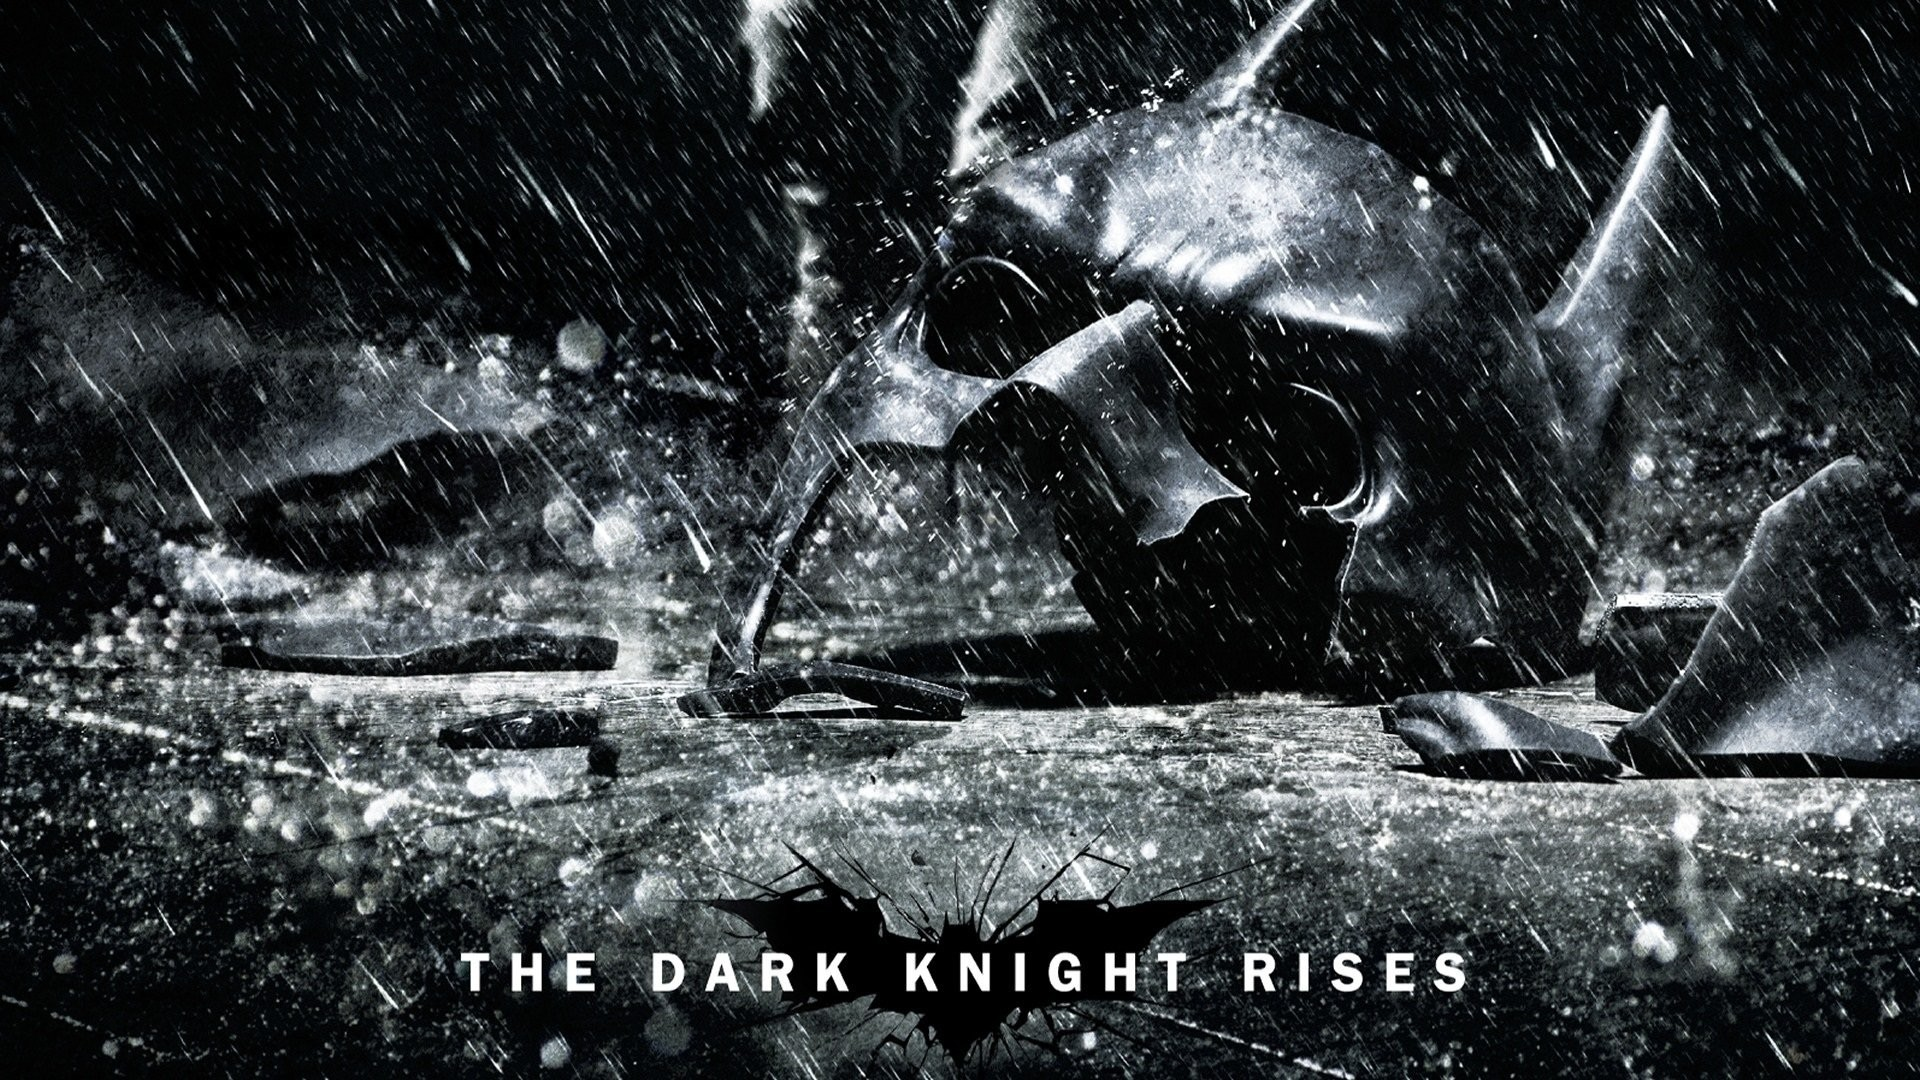 the dark knight rises wallpaper hd 1920x1080 (79+ images)